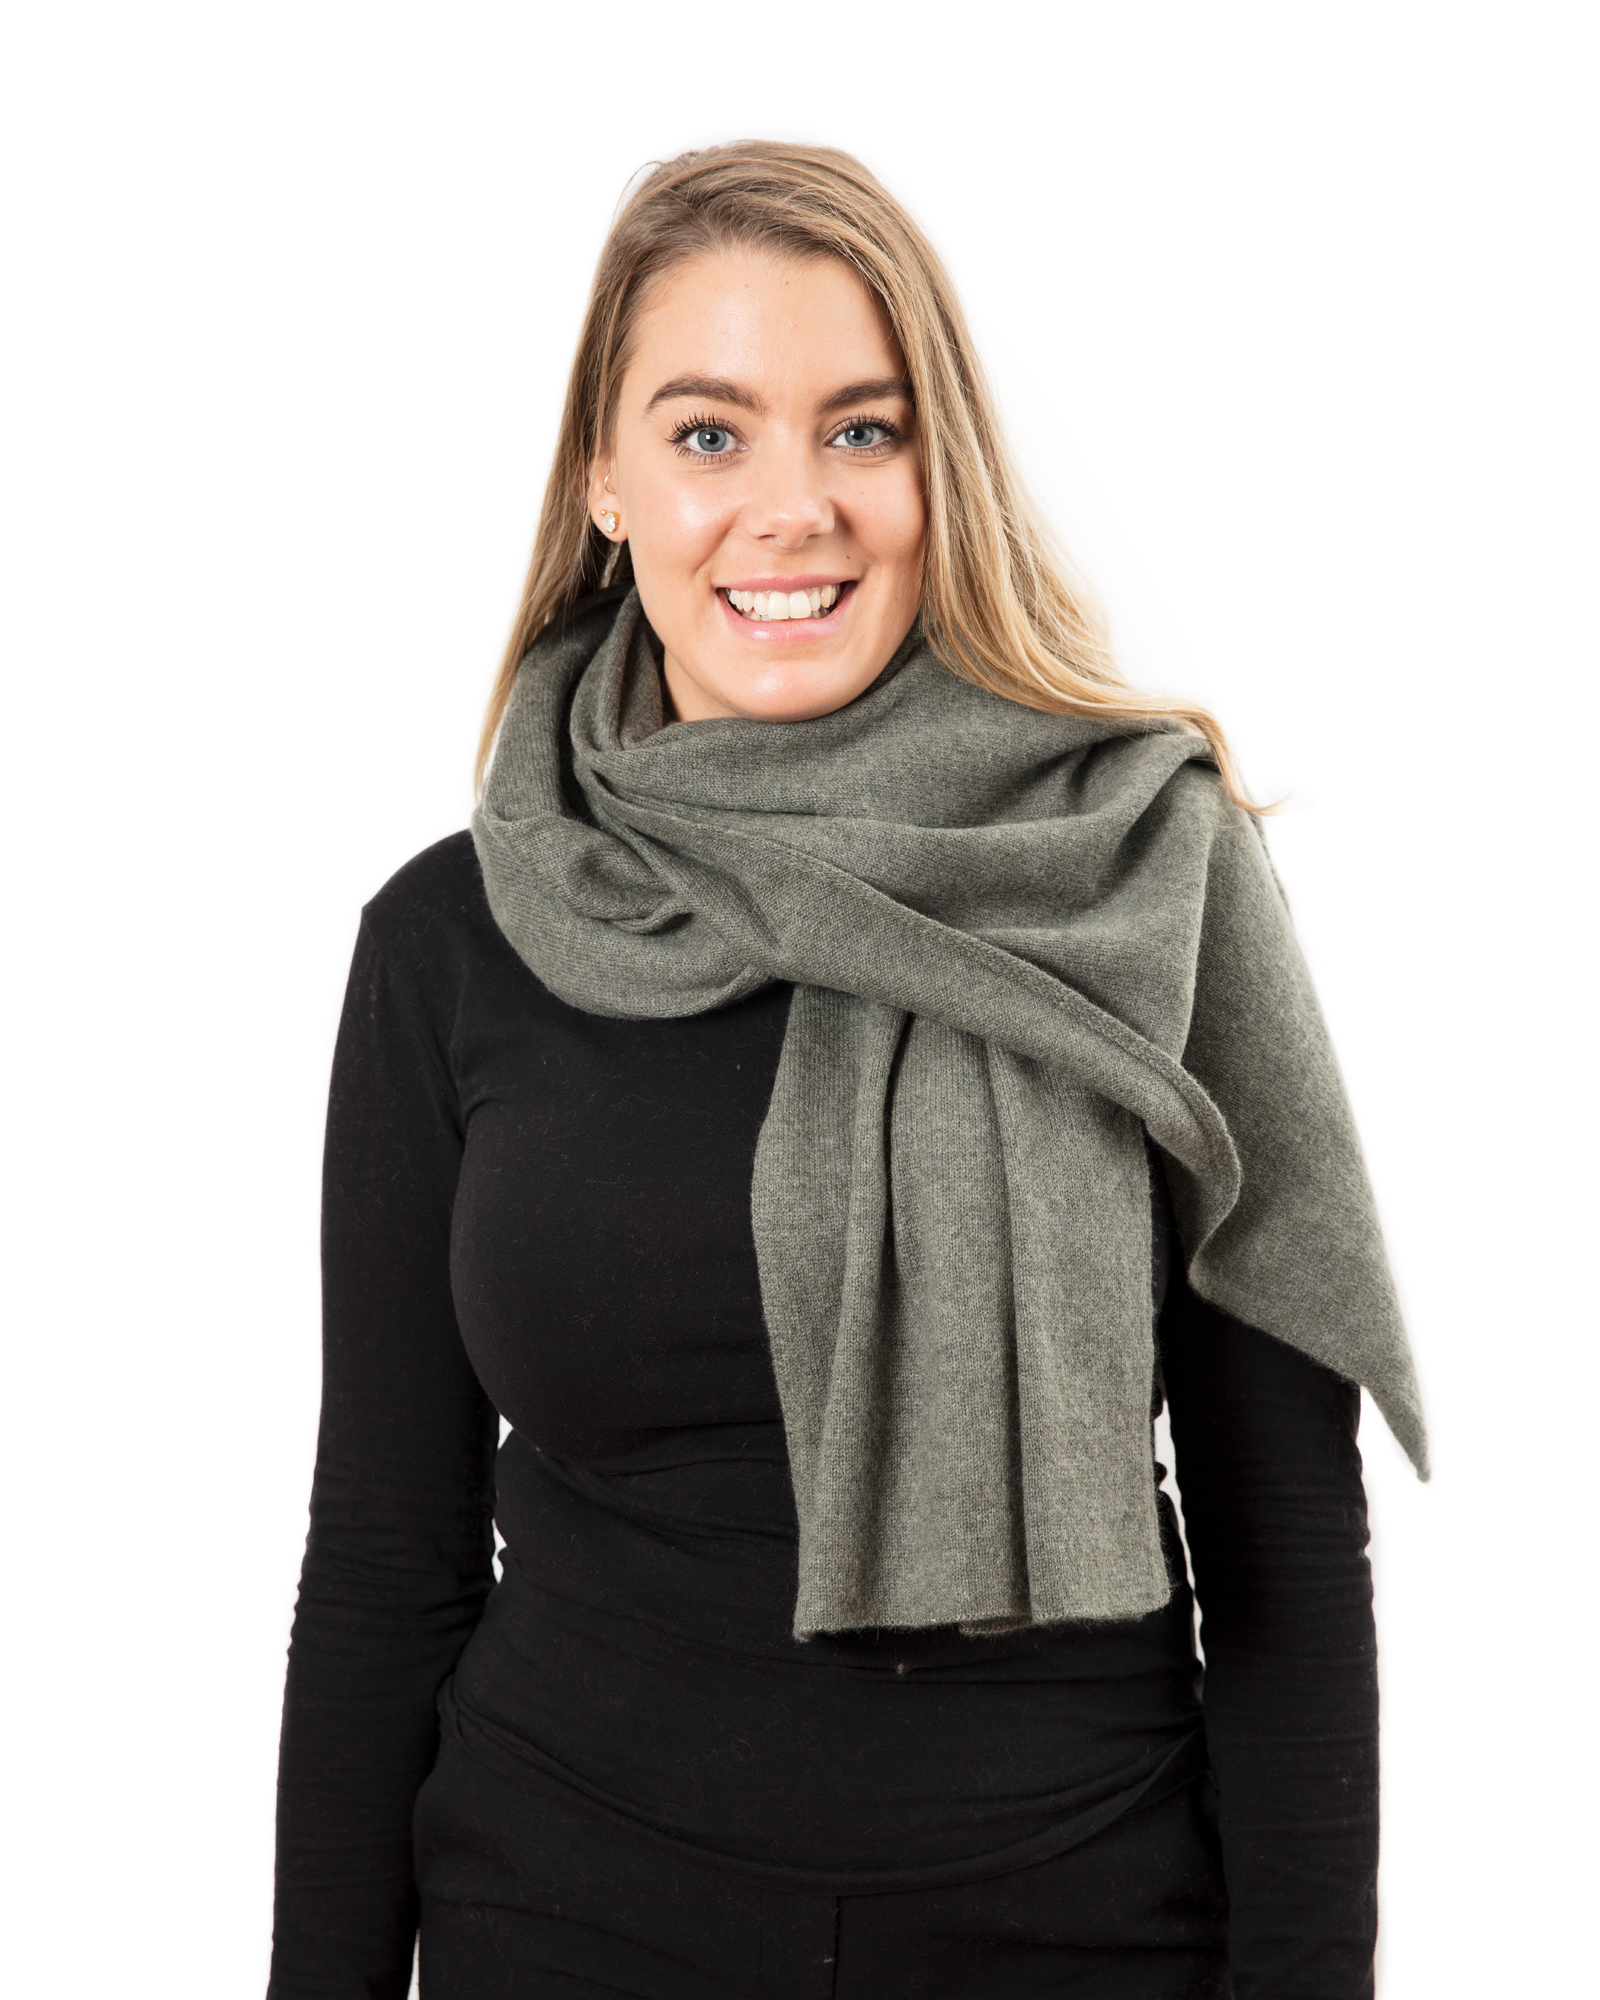 Lisa Yang Stor sjal Army Green 100% Cashmere - DAYSTYLE 27161a4433a01